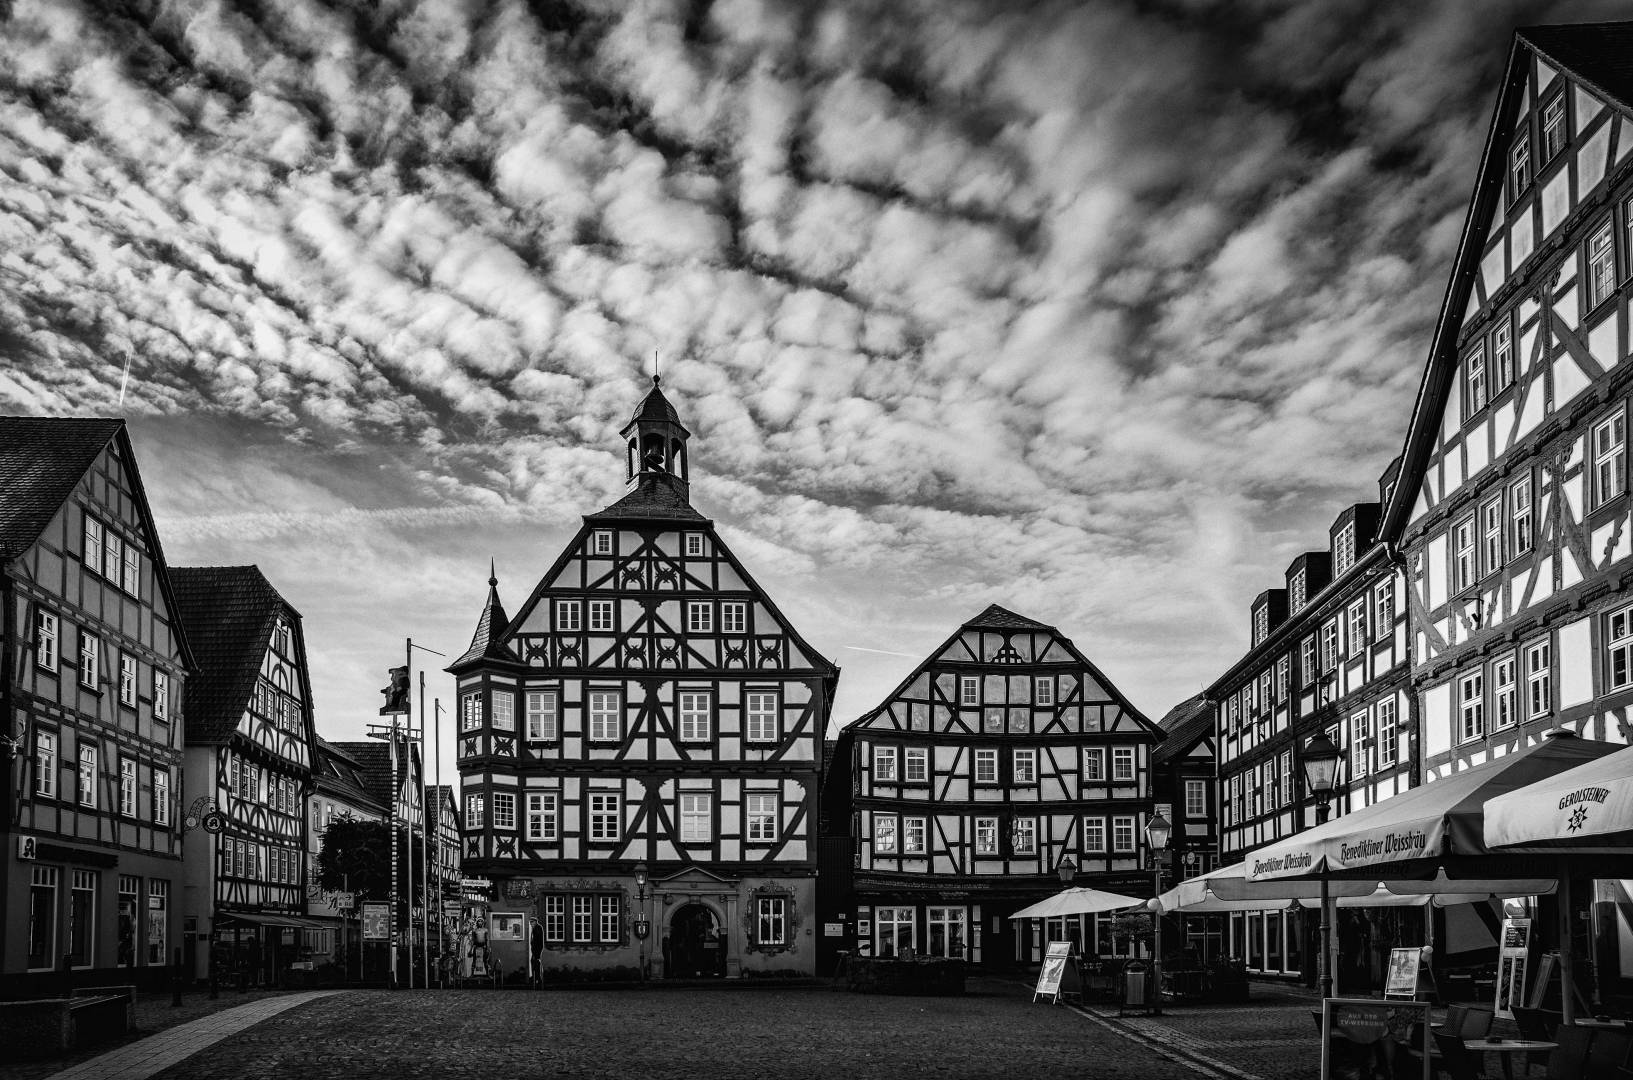 Wetzlar town centre, home of the Monochrom